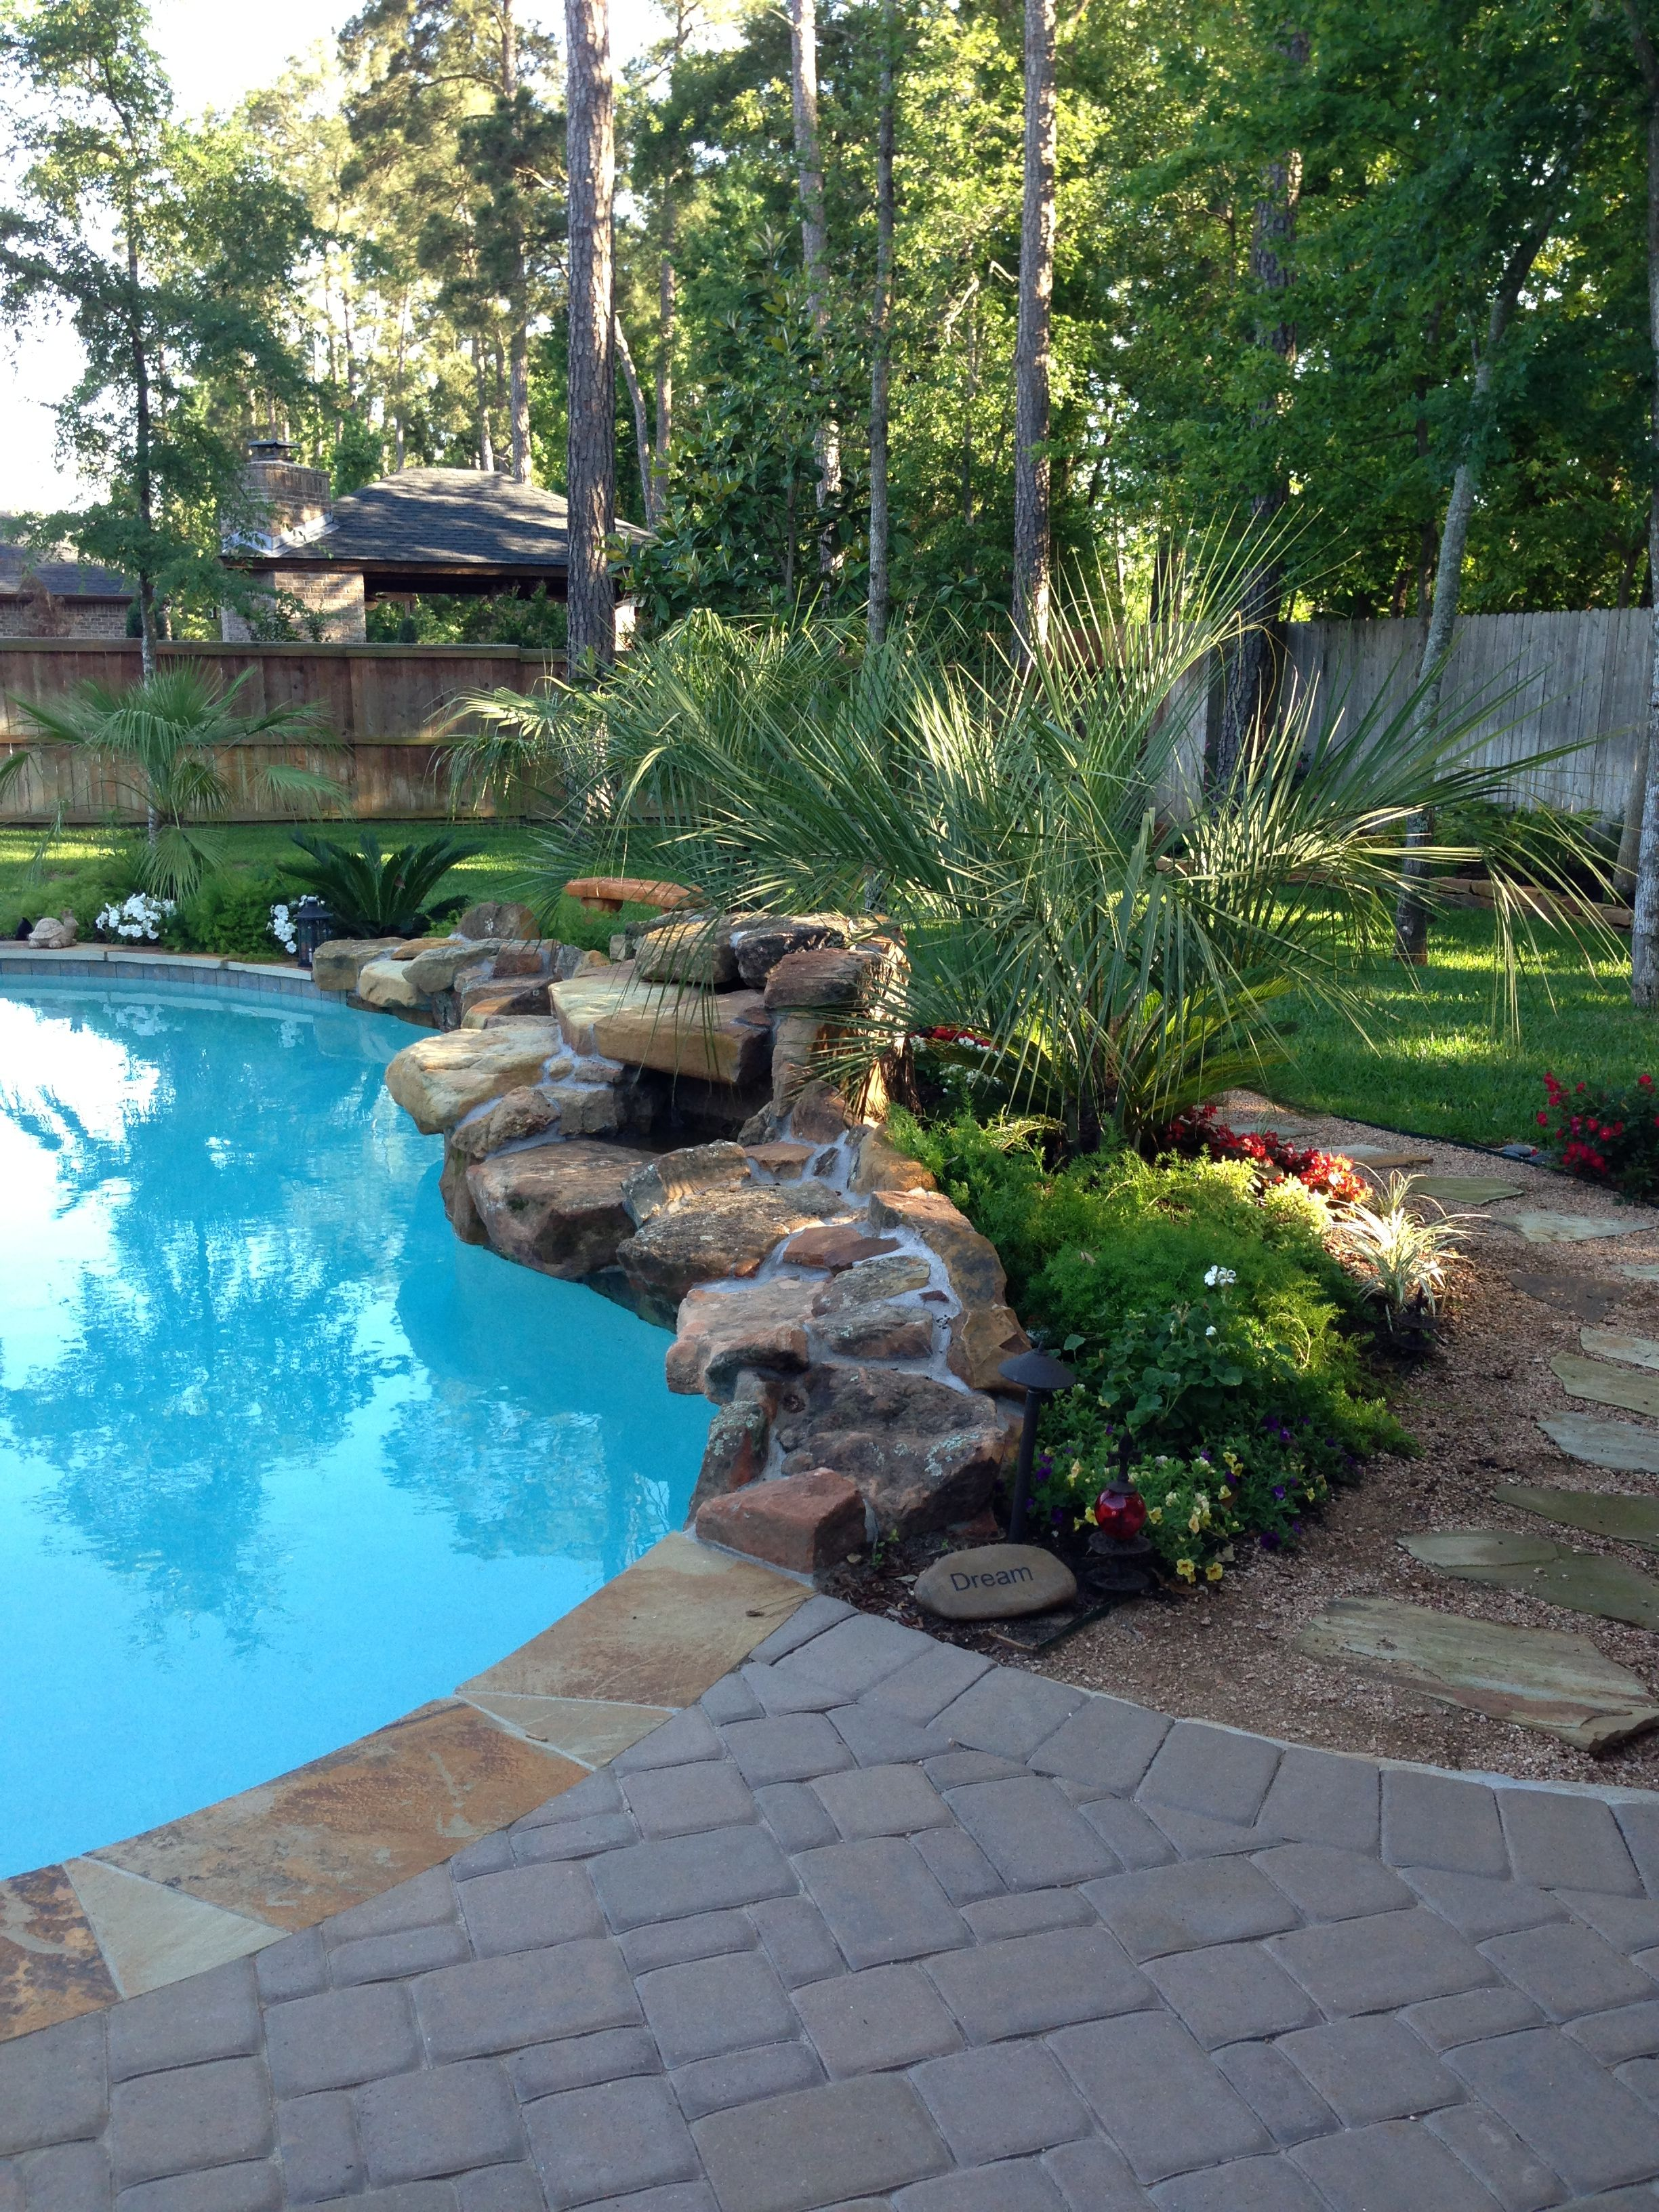 Pool Landscaping With Rock Pool Landscape Design Swimming Pool